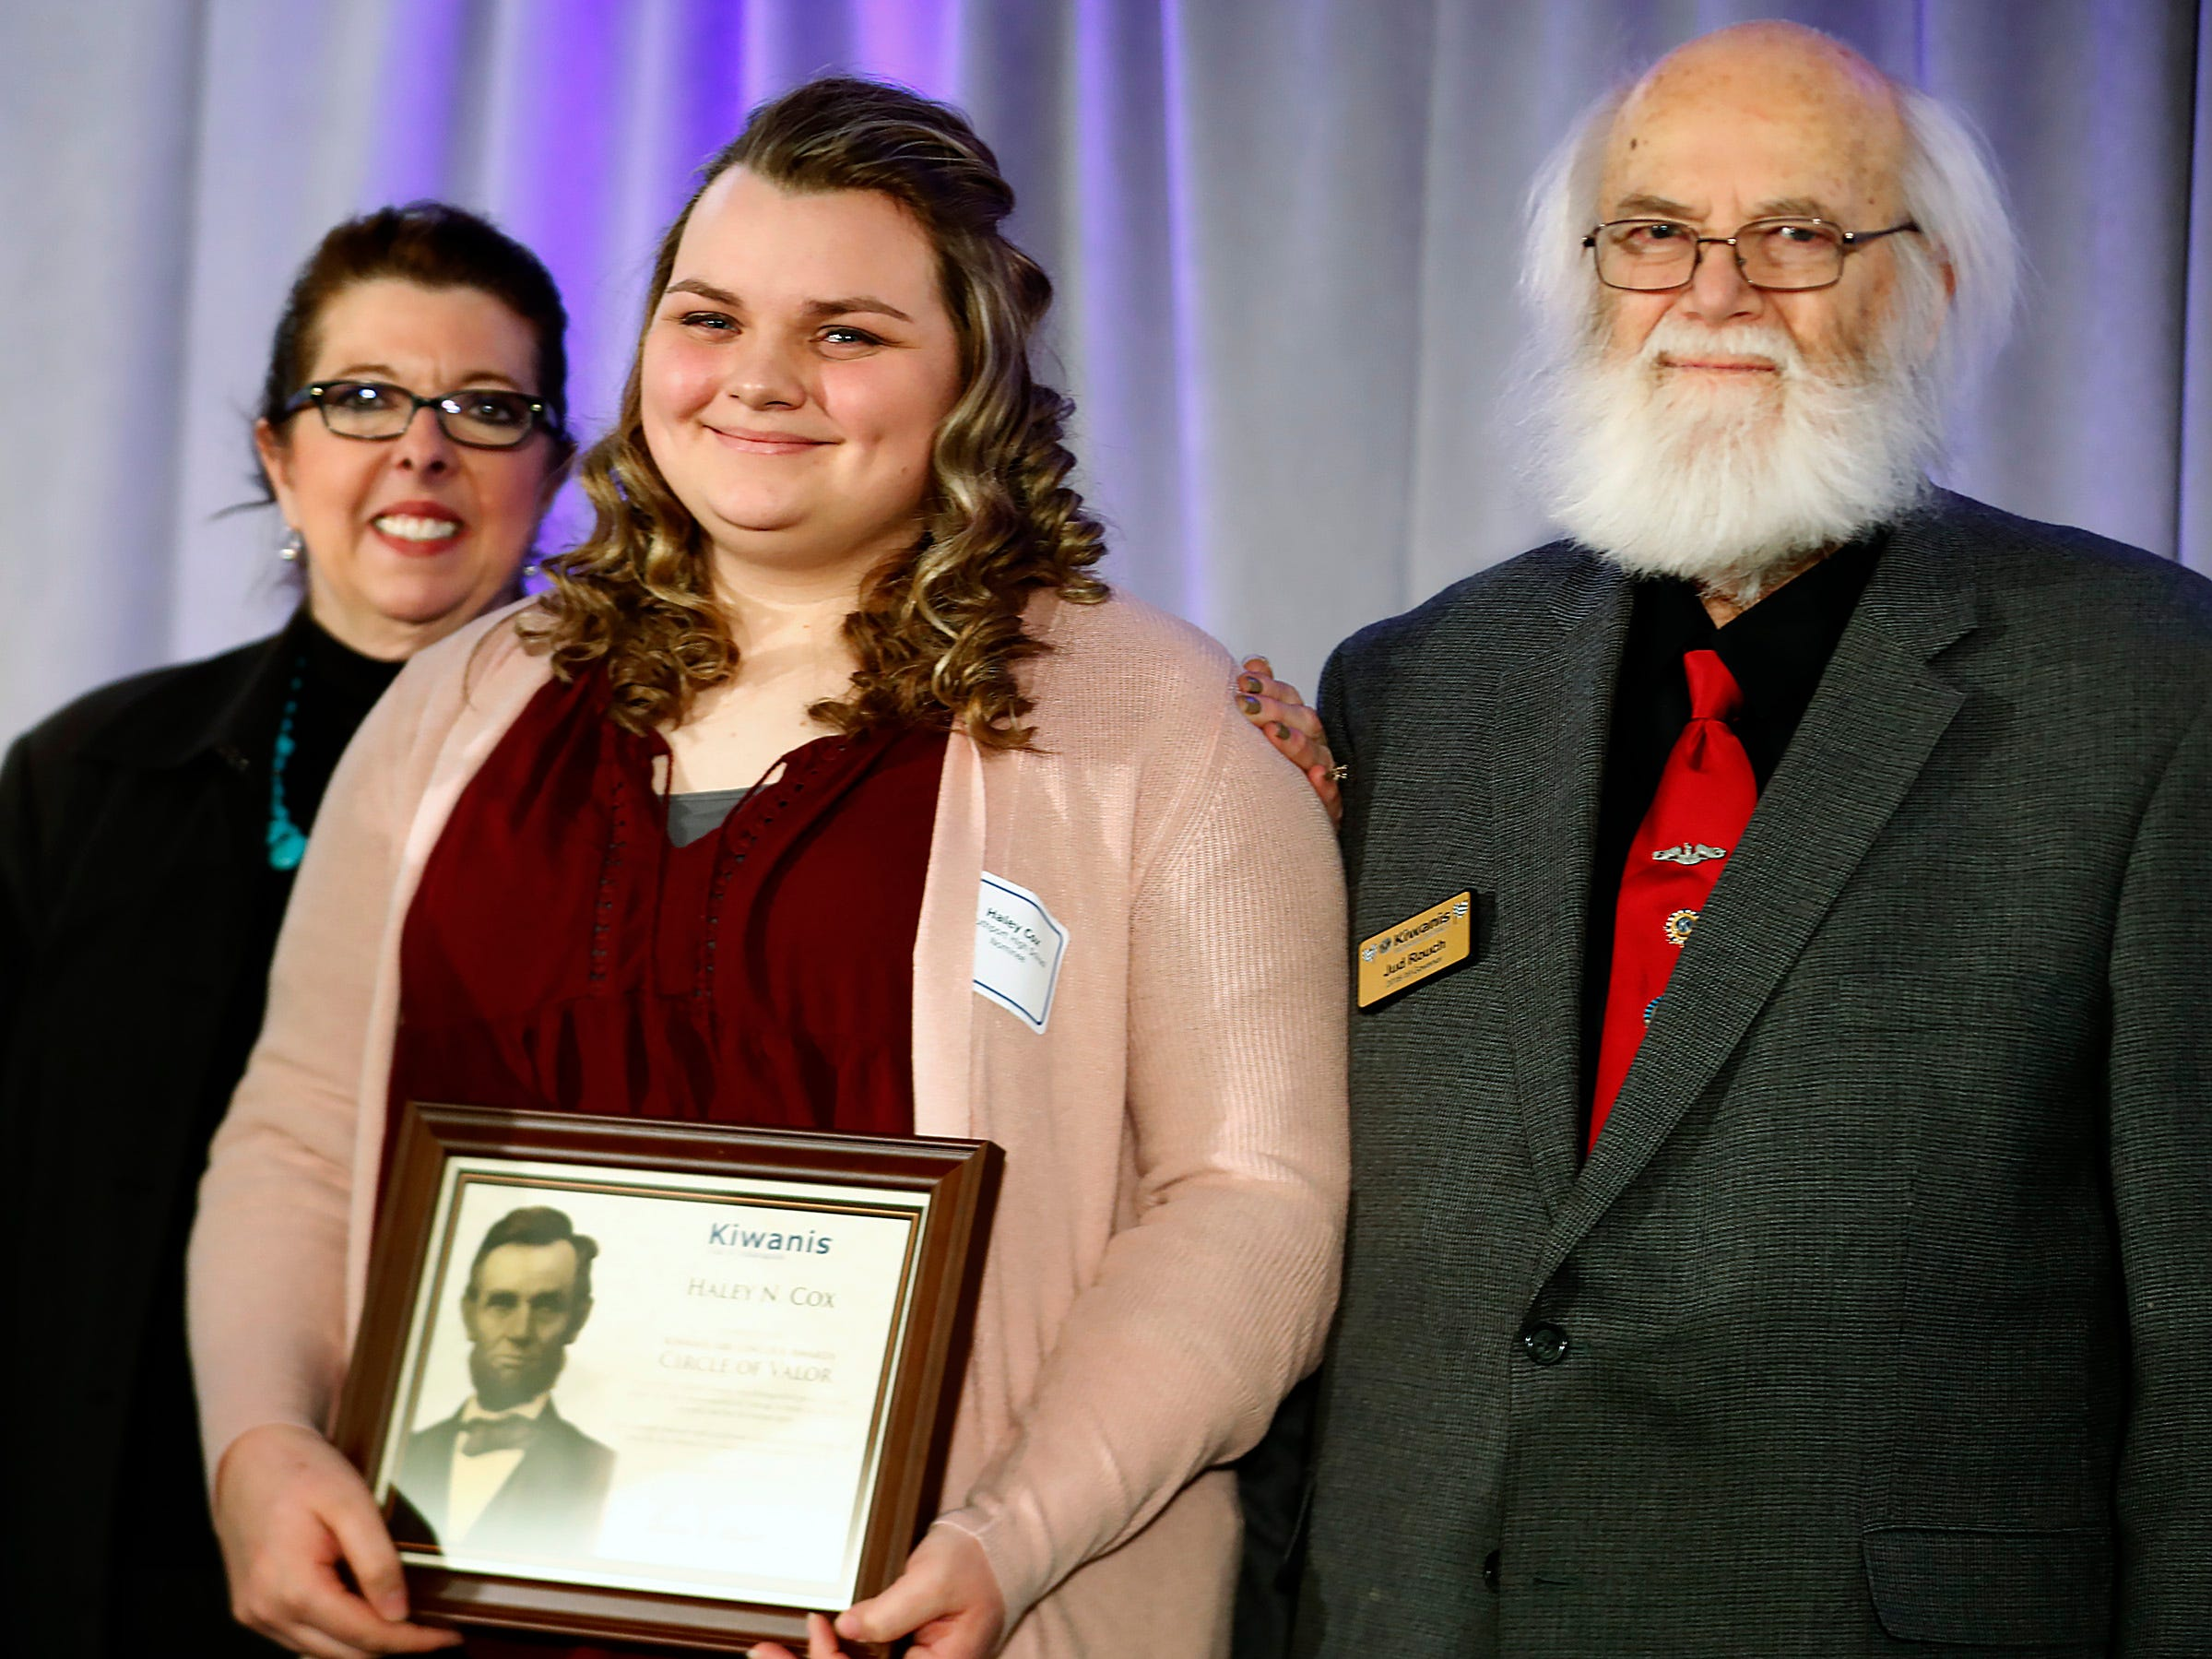 Southport High School student Haley Cox, center, is honored with a Circle of Valor award at the 44th Annual Abe Lincoln Awards Program, Friday, Feb. 8, 2019. The Kiwanis Club of Indianapolis program was held at Ivy Tech Community College.  20 high school student were honored at the annual event which celebrates overcoming adversity in life to succeed.